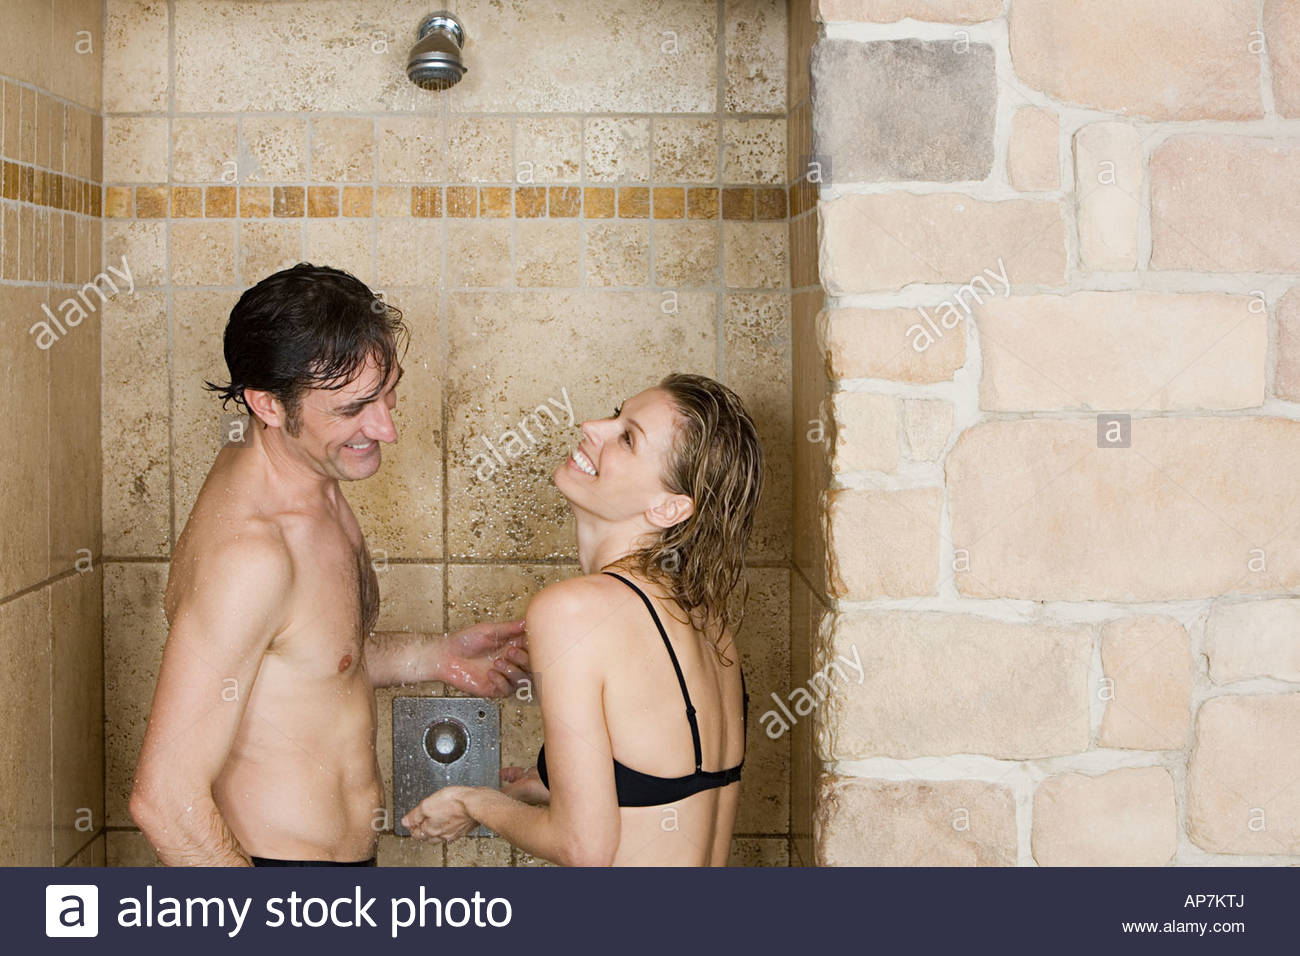 Mature couple in shower